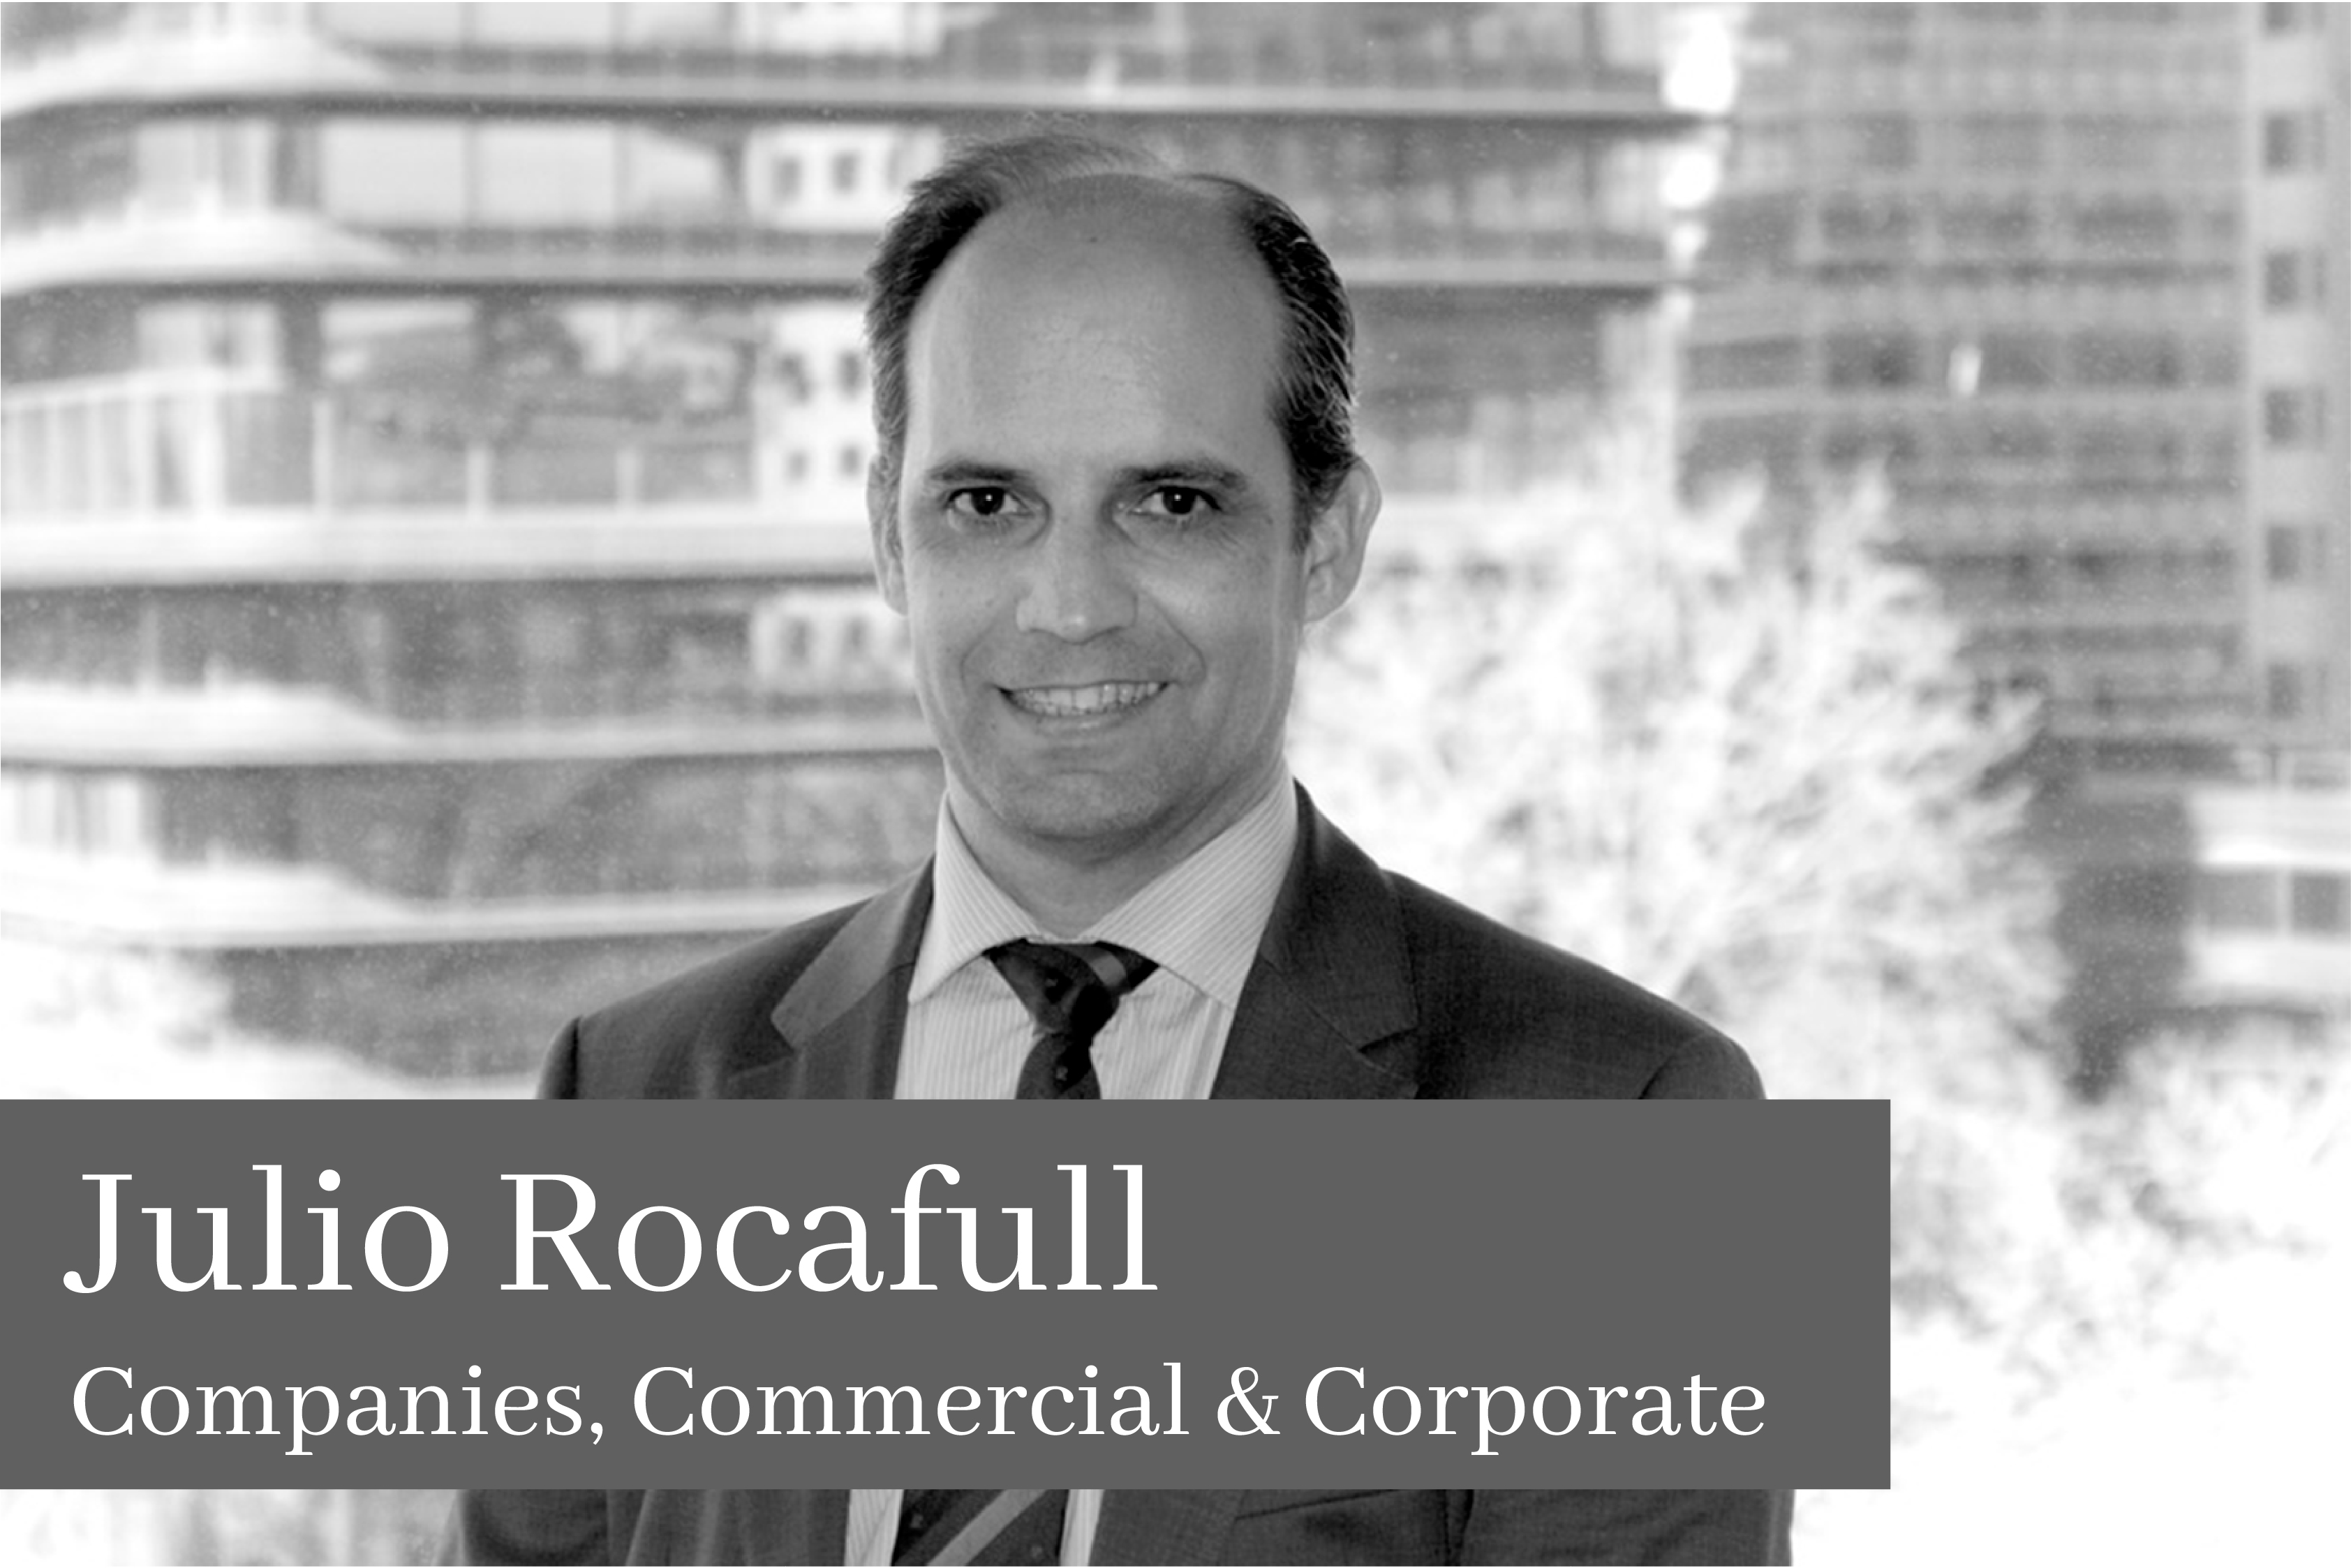 Julio Rocafull Companies Commercial & Corporate